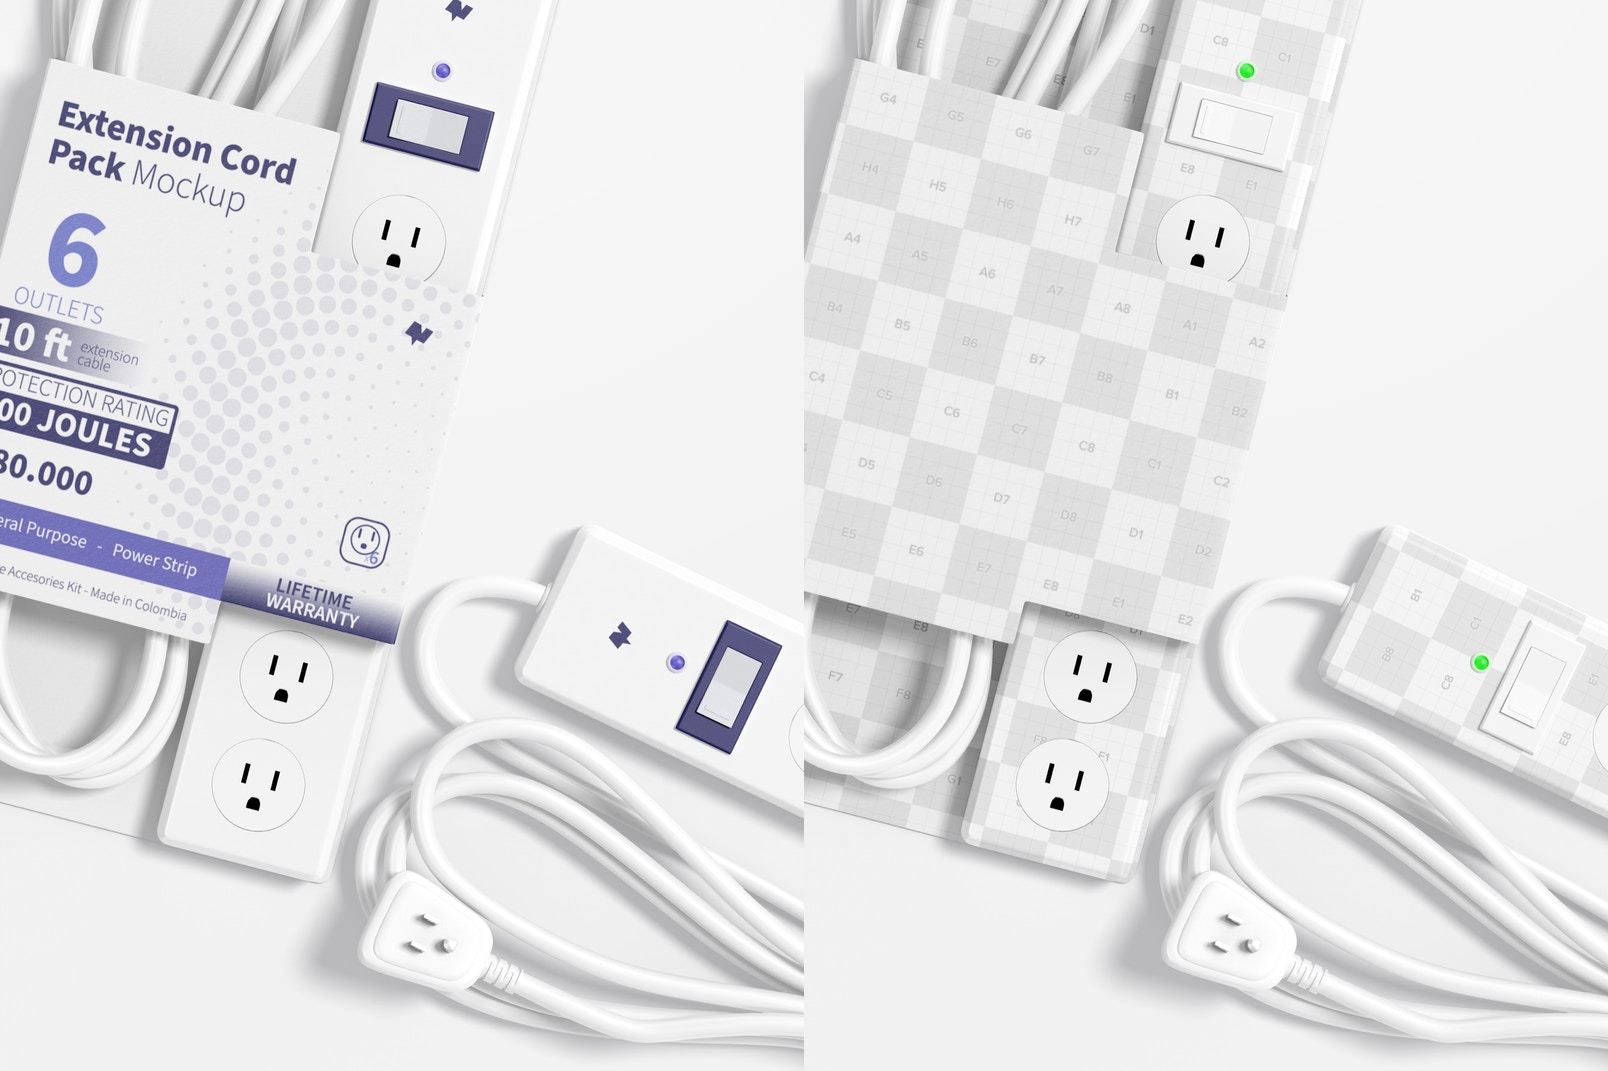 Extension Cord Pack Mockup, Close Up